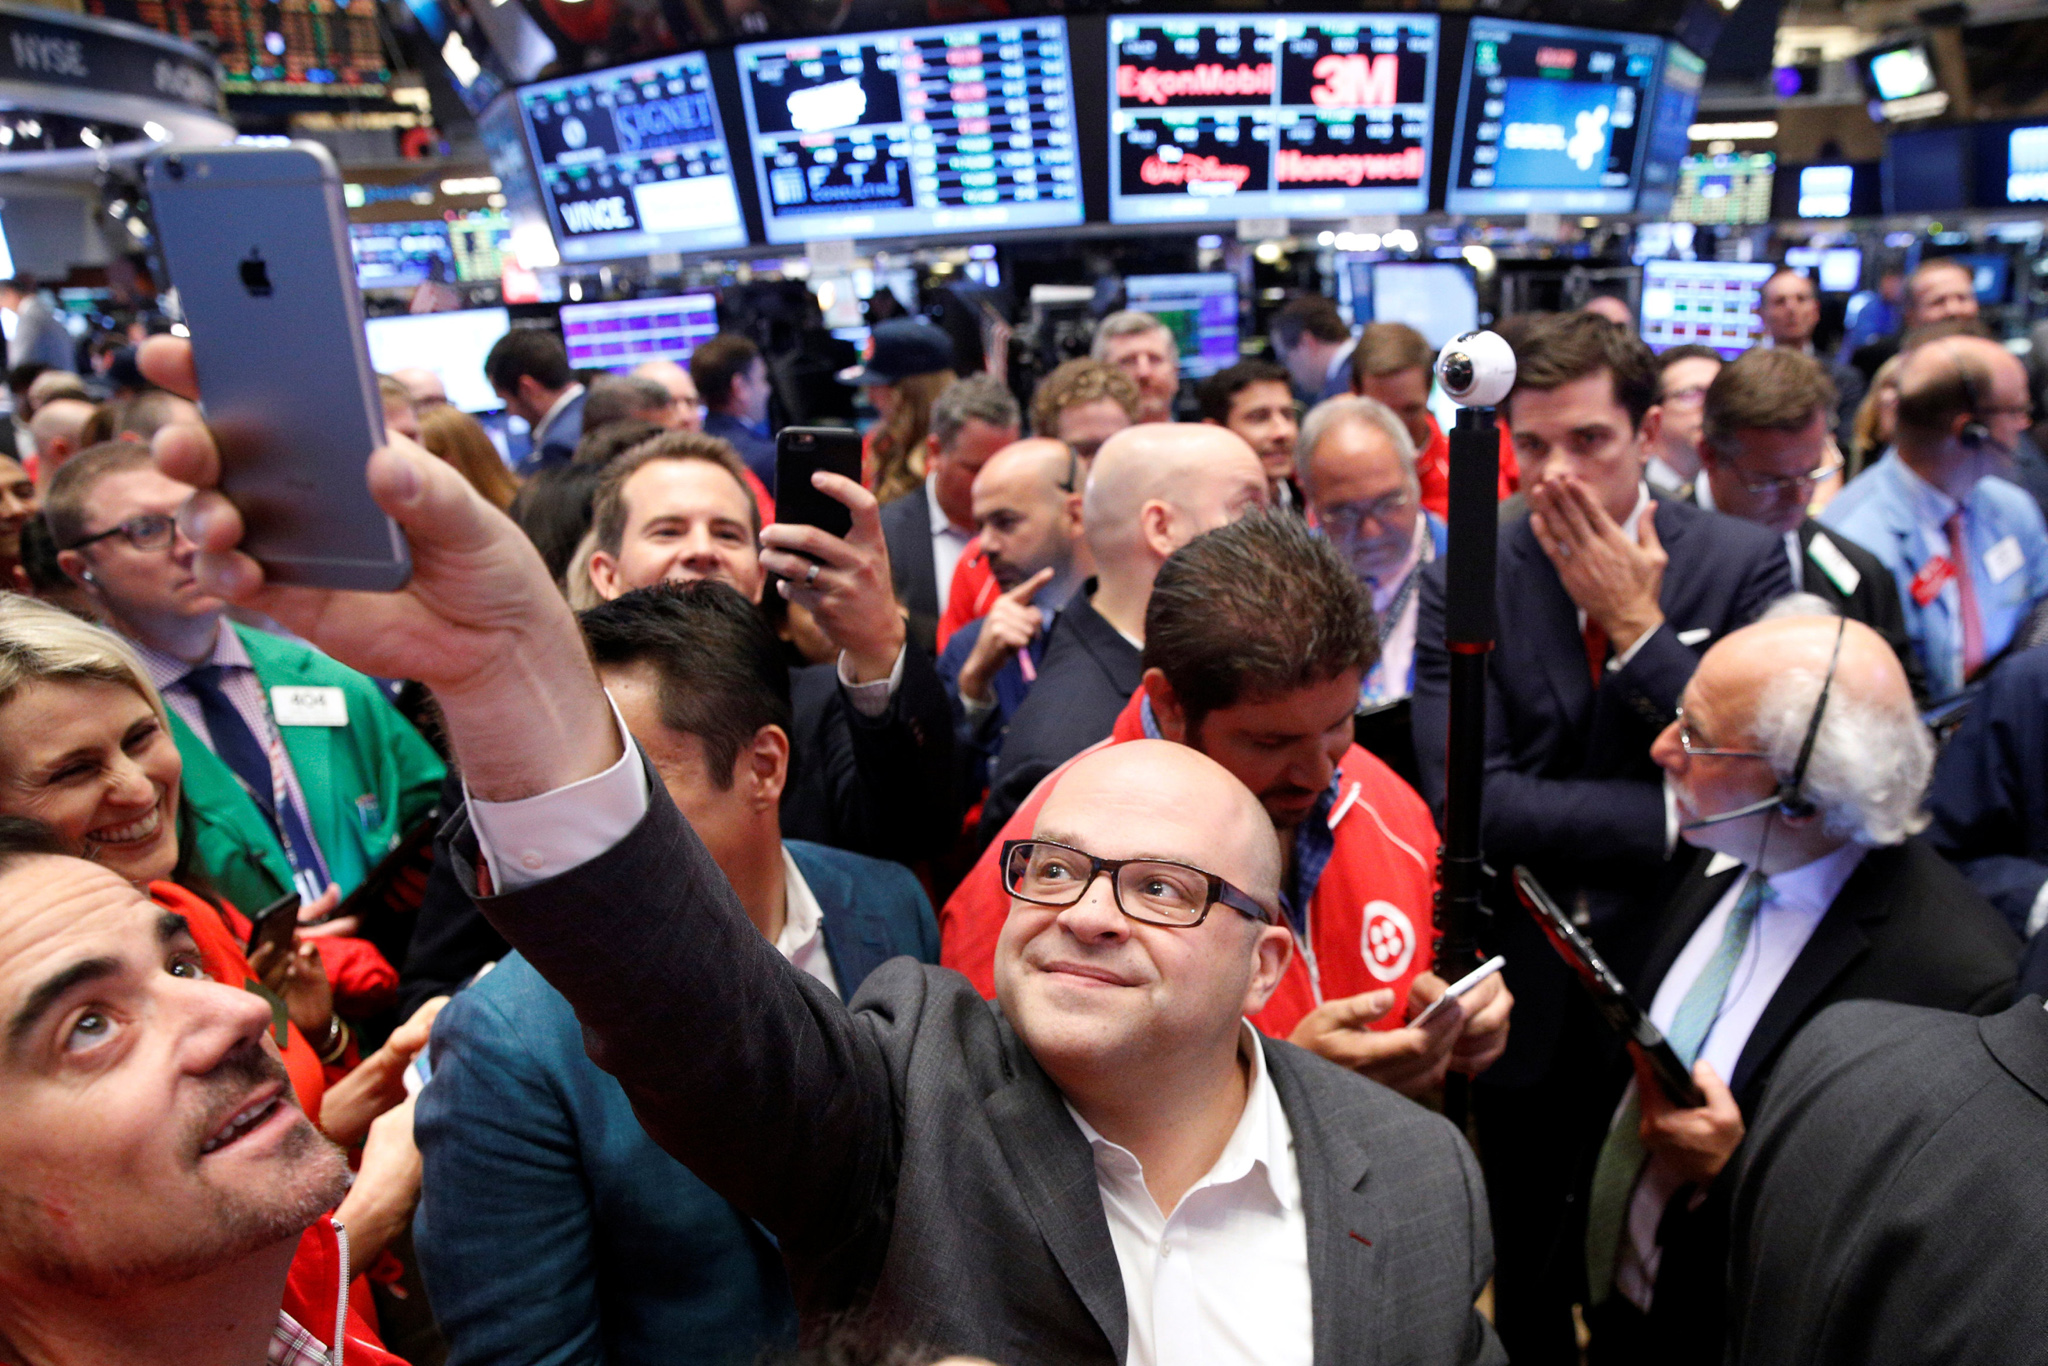 Jeff Lawson, (C) Founder, CEO, & Chairman of Communications software provider Twilio Inc., takes a selfie photo during his company's IPO on the floor of the New York Stock Exchange (NYSE) in New York City, U.S., June 23, 2016. REUTERS/Brendan McDermid